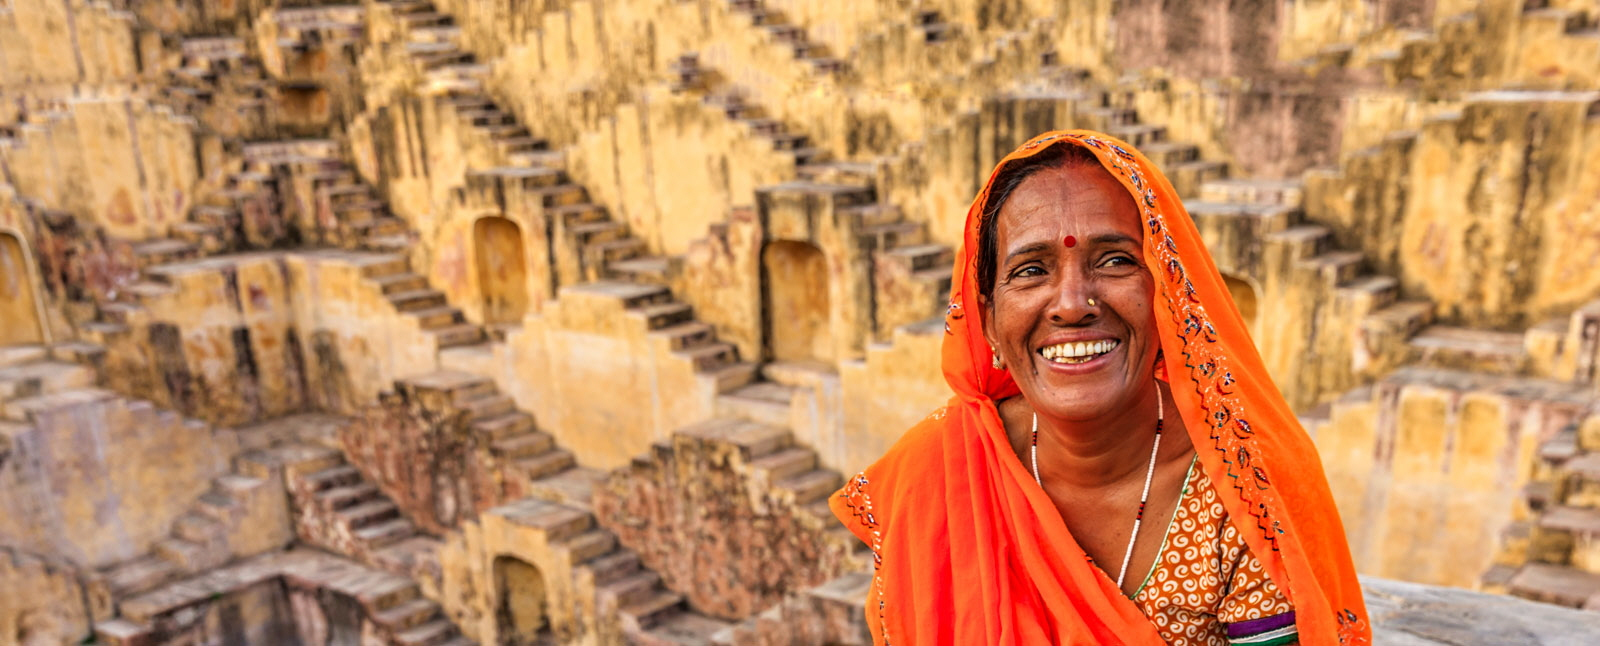 Indian woman resting inside stepwell in village near Jaipur, Rajasthan, India.